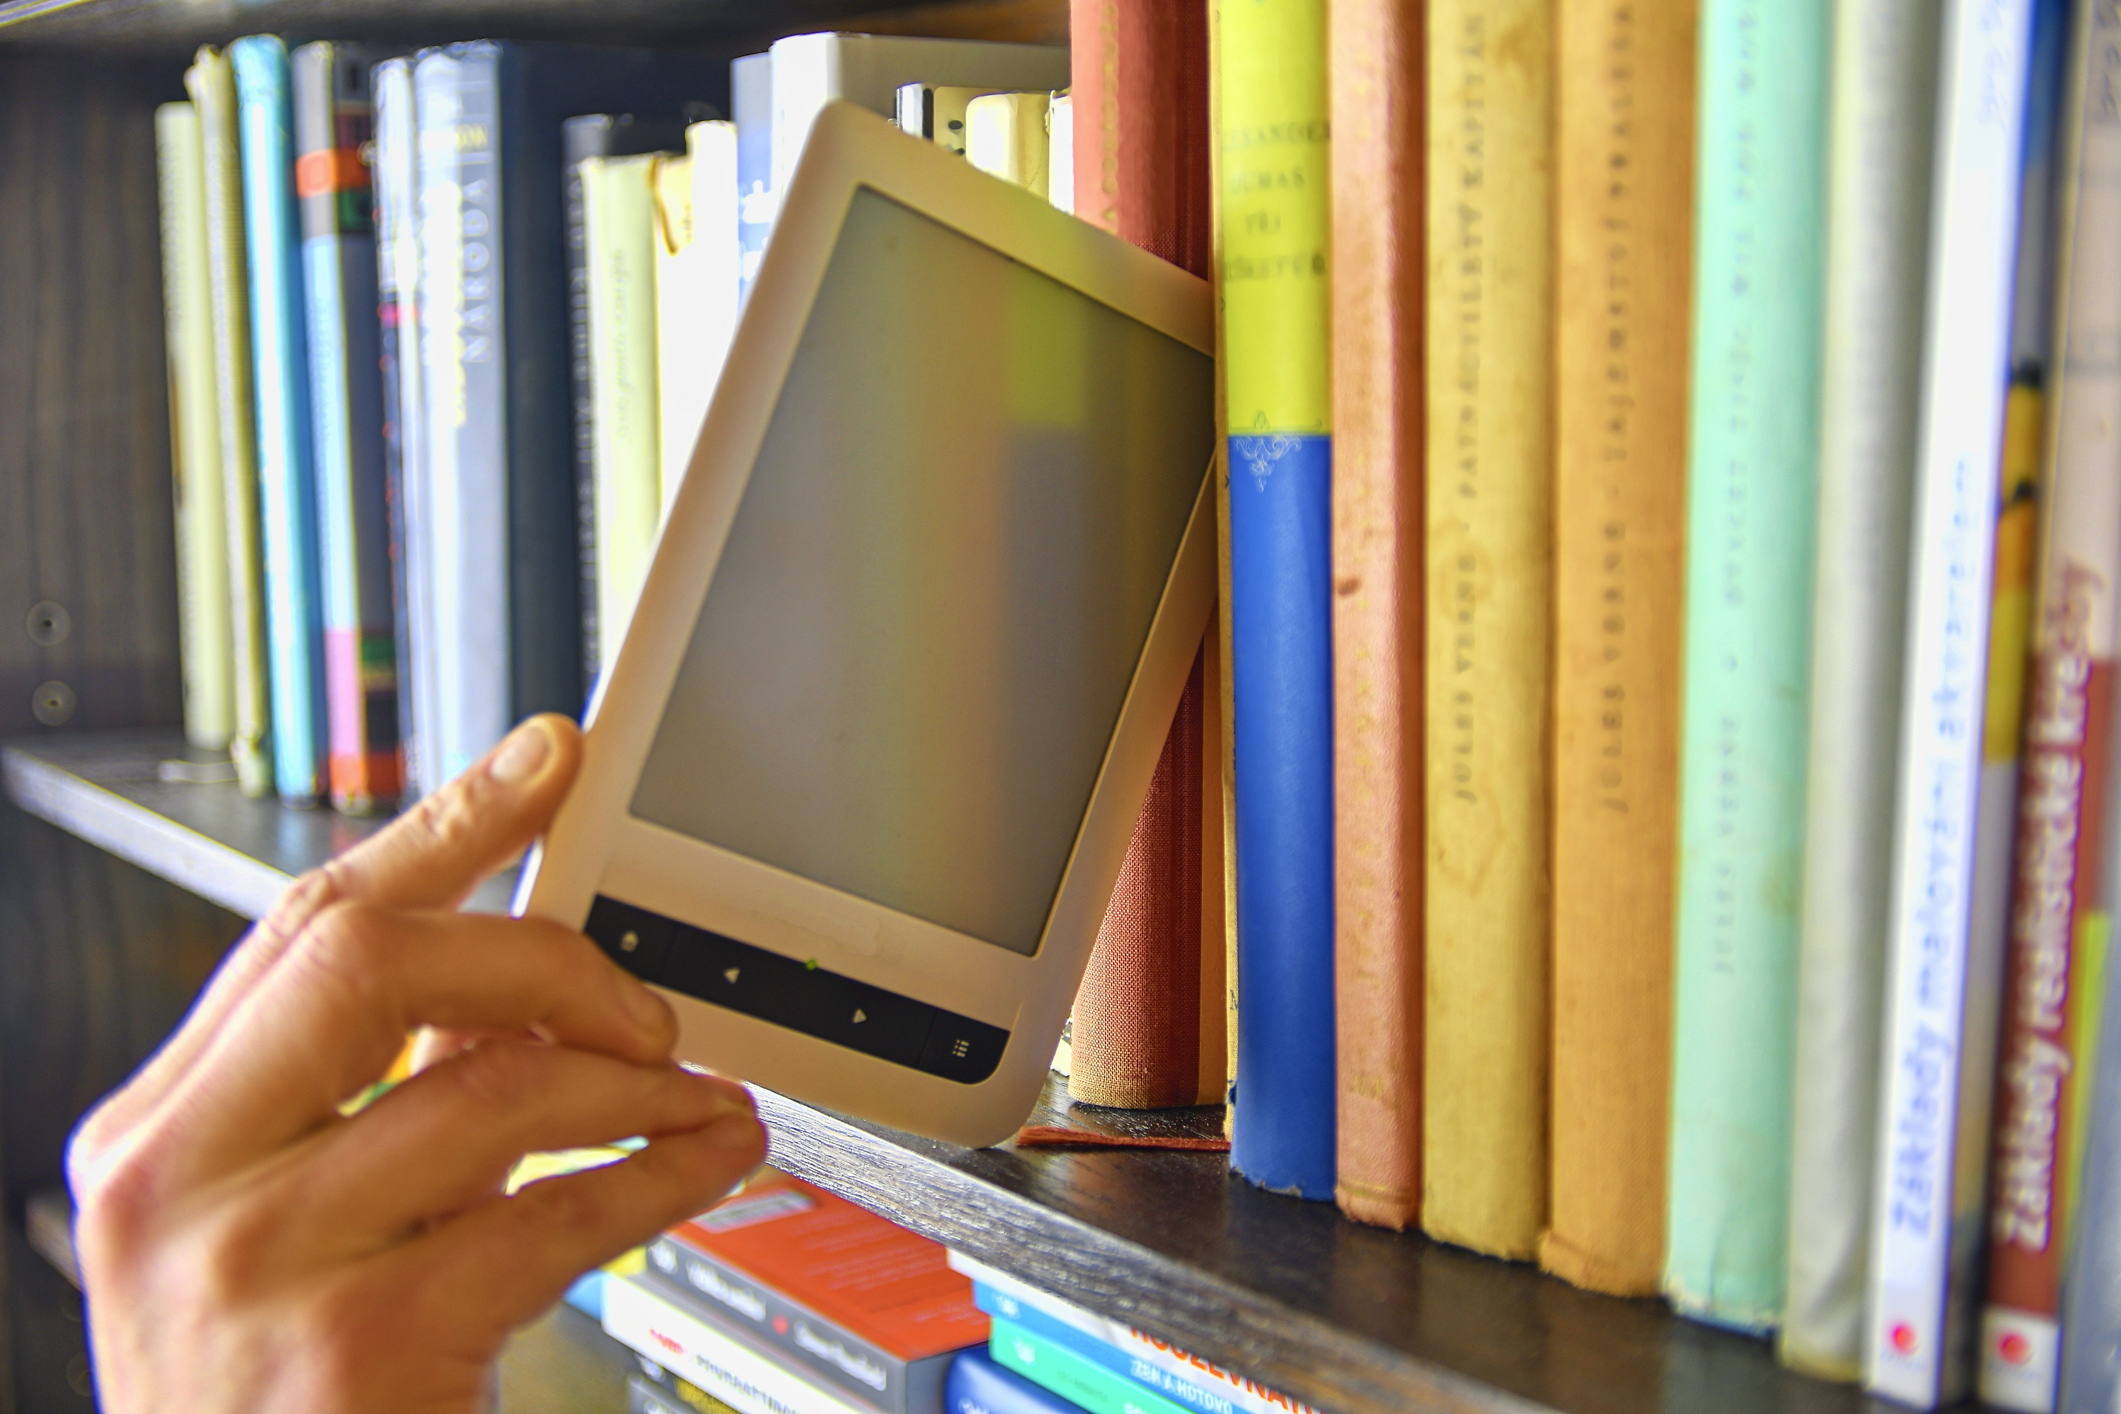 Someone grabbing a e-reader from a library shelf - Odenton Library online resources